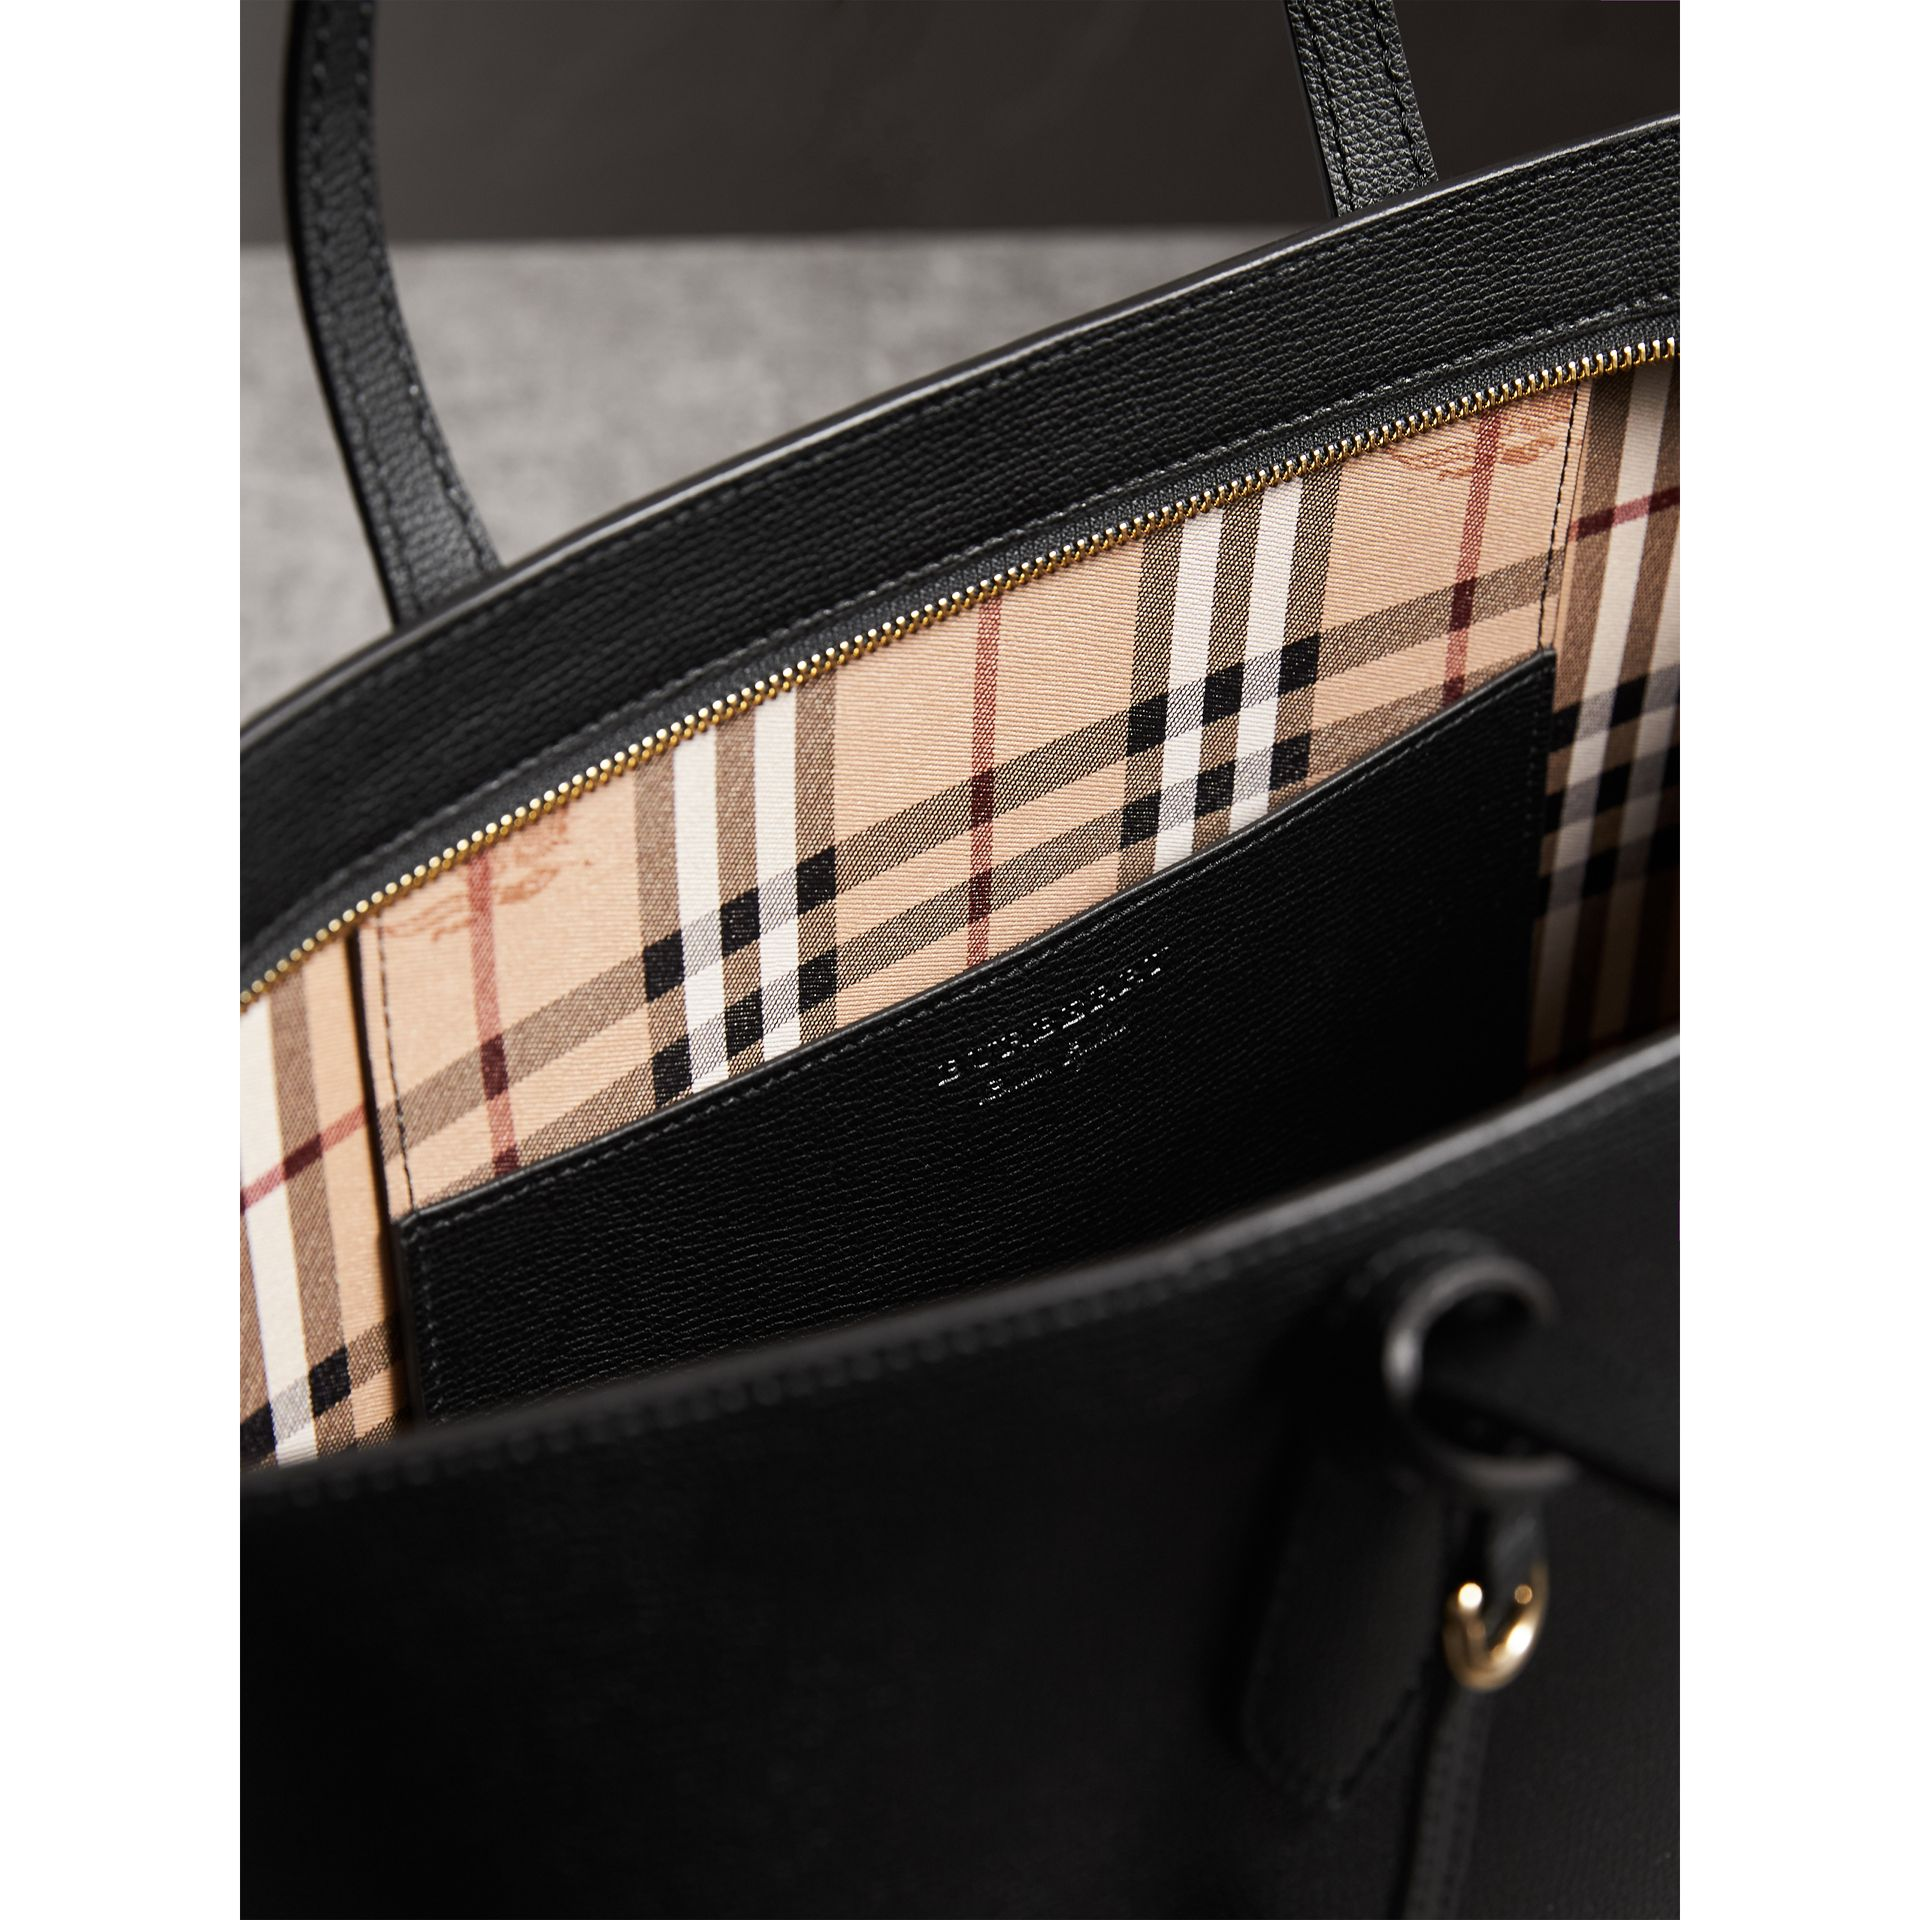 Medium Coated Leather Tote in Black - Women | Burberry United Kingdom - gallery image 4